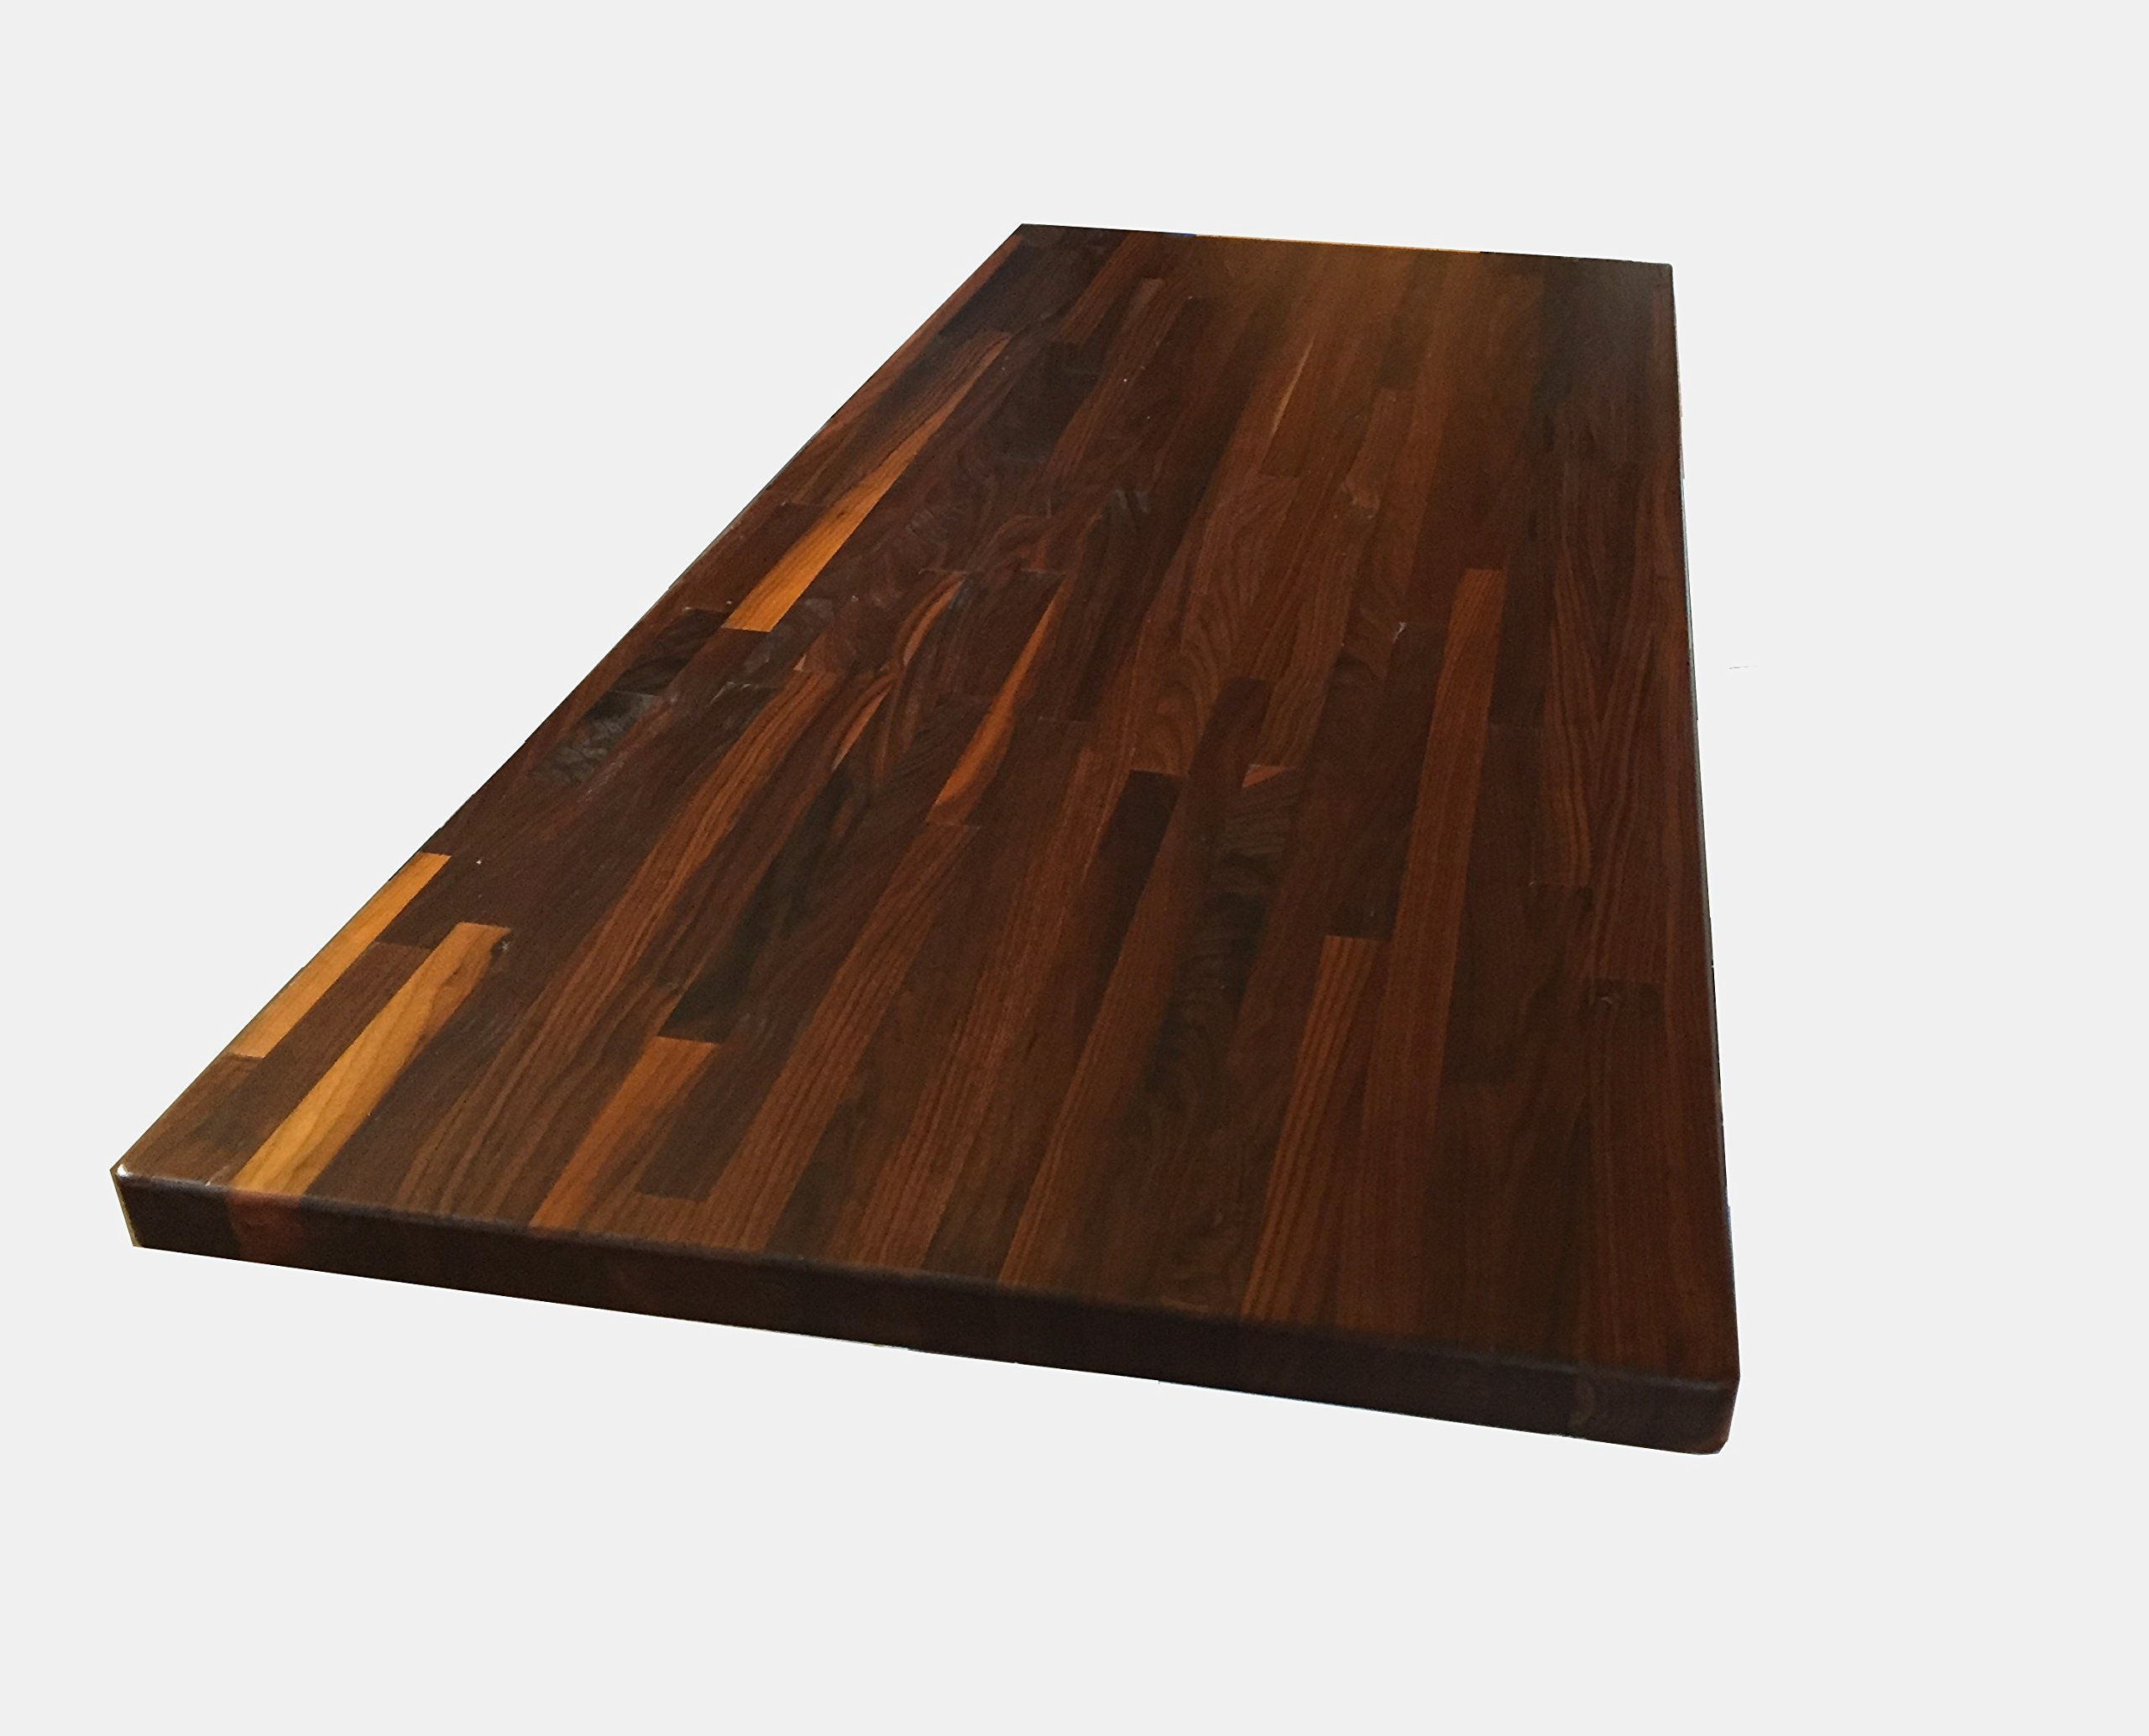 Forever Joint Walnut Butcher Block Wood Countertop - 1.5'' x 26'' x 84''